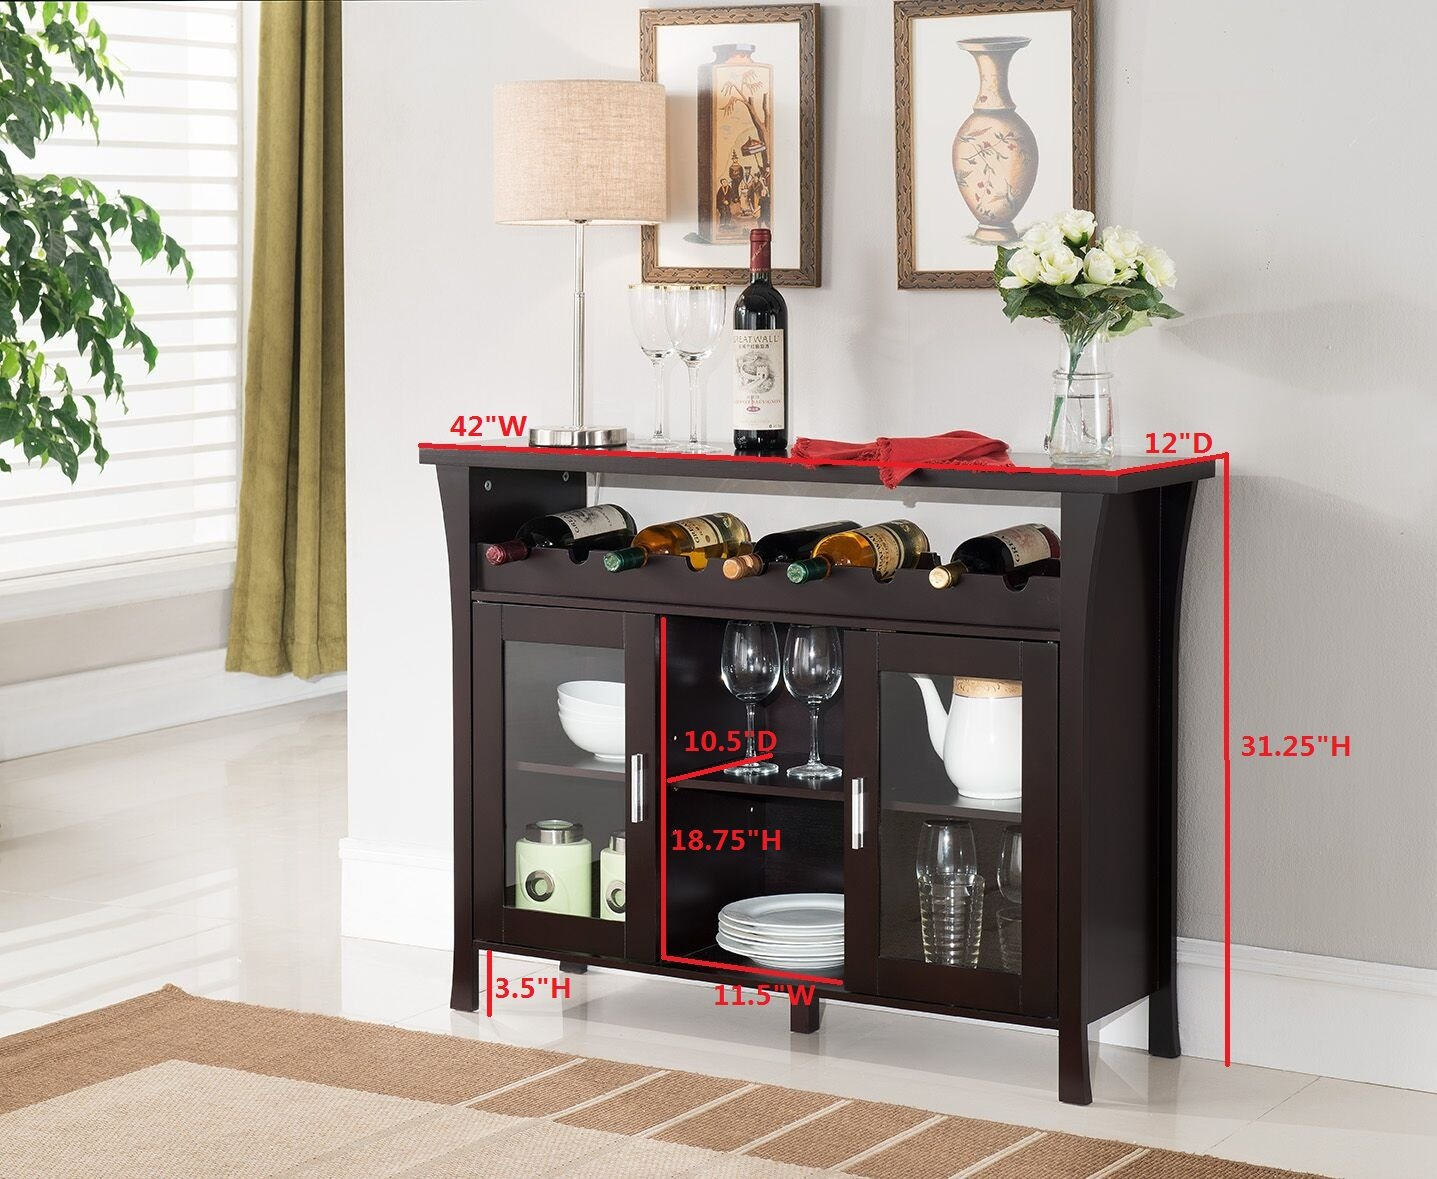 market floor bar rack bottle maison decorative do racks cupboard dining wine furniture storage category and world xxx